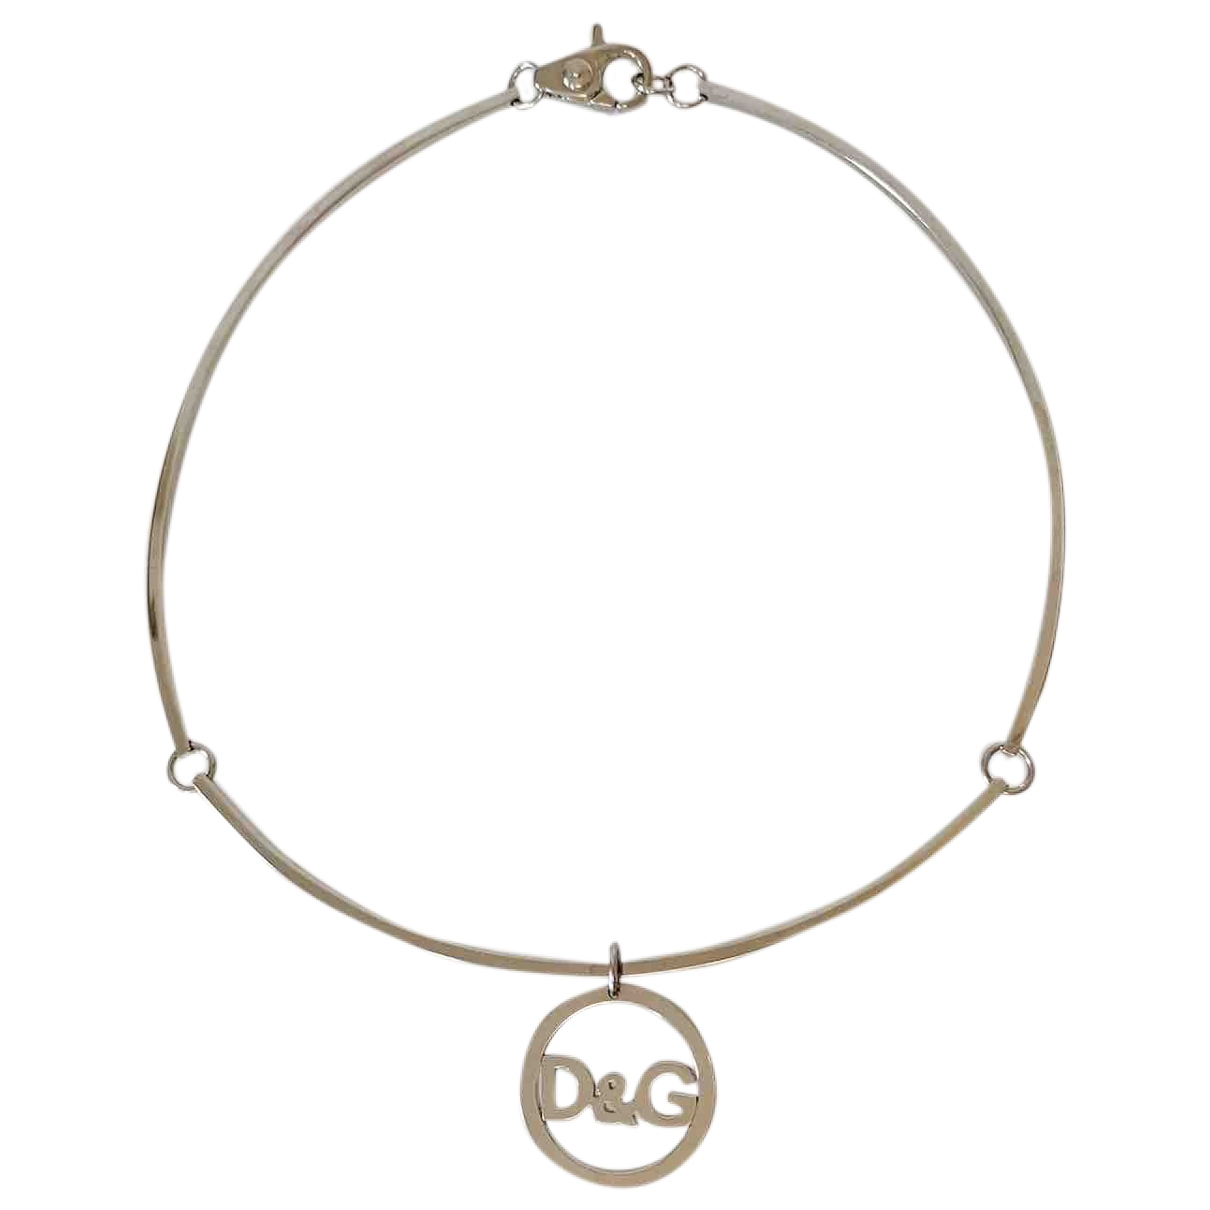 Dolce & Gabbana \N Silver Metal necklace for Women \N